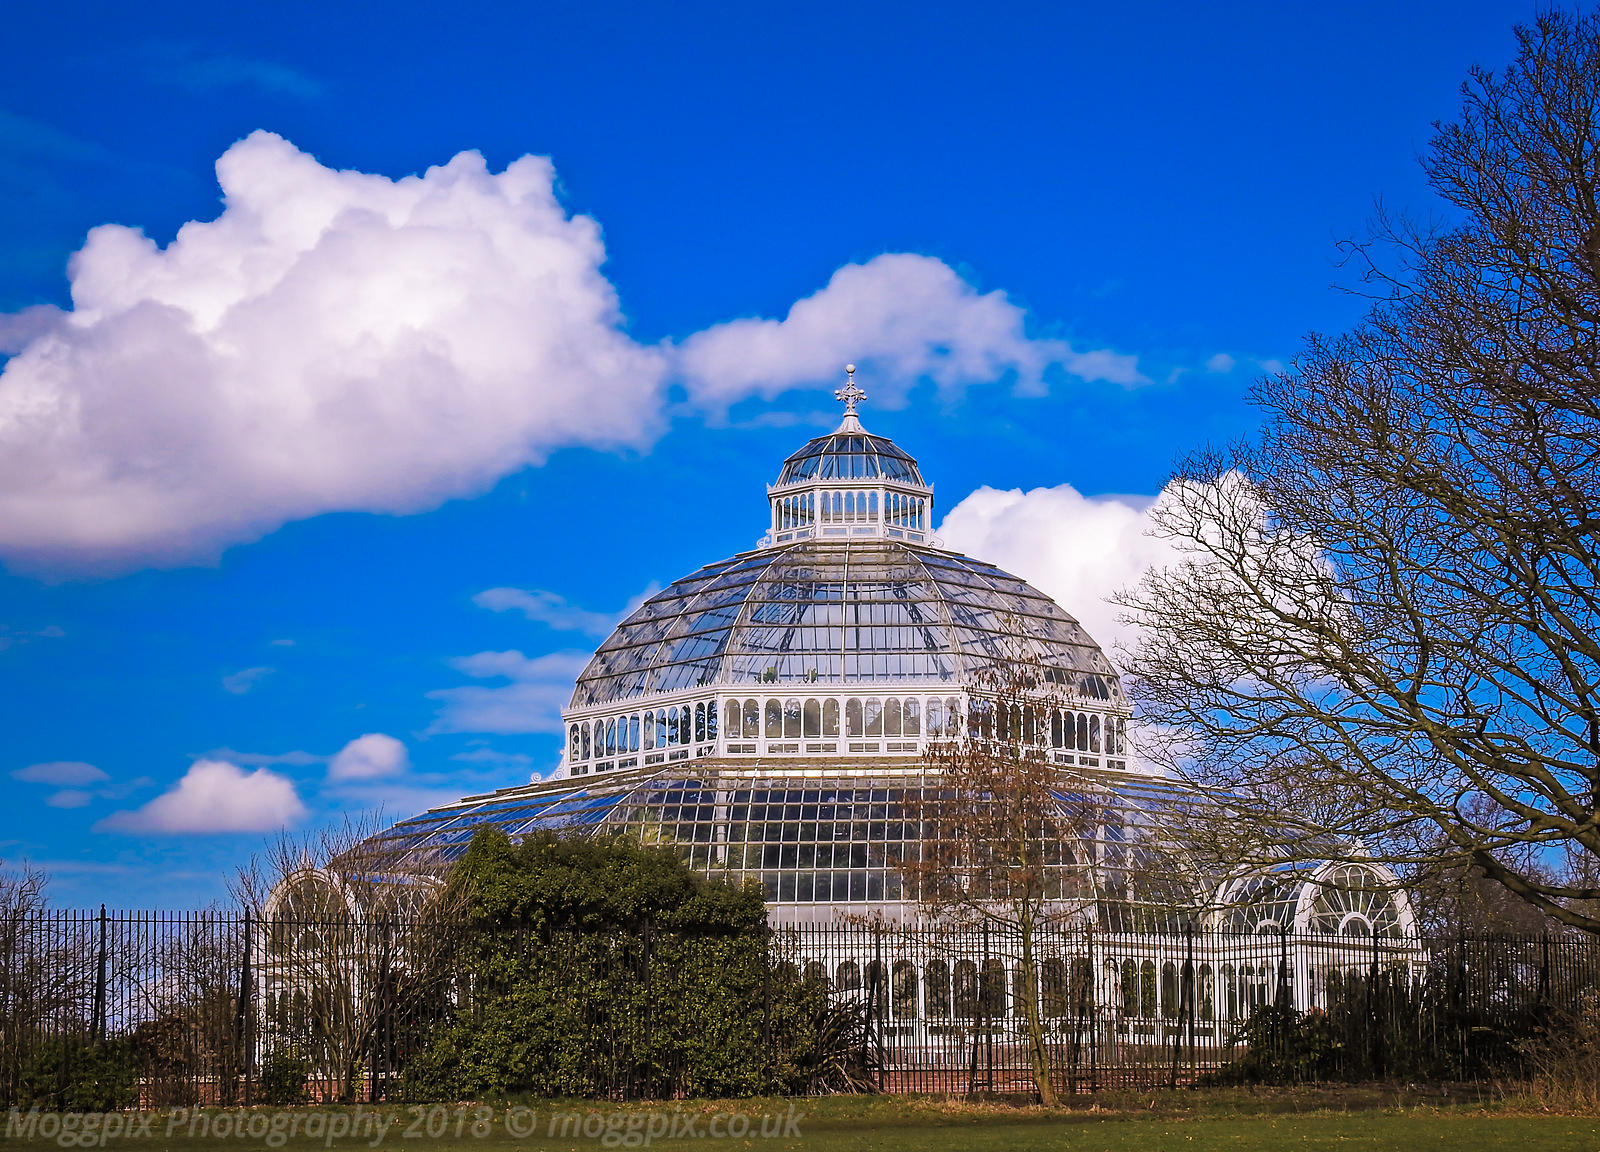 Early Spring at the Palm House